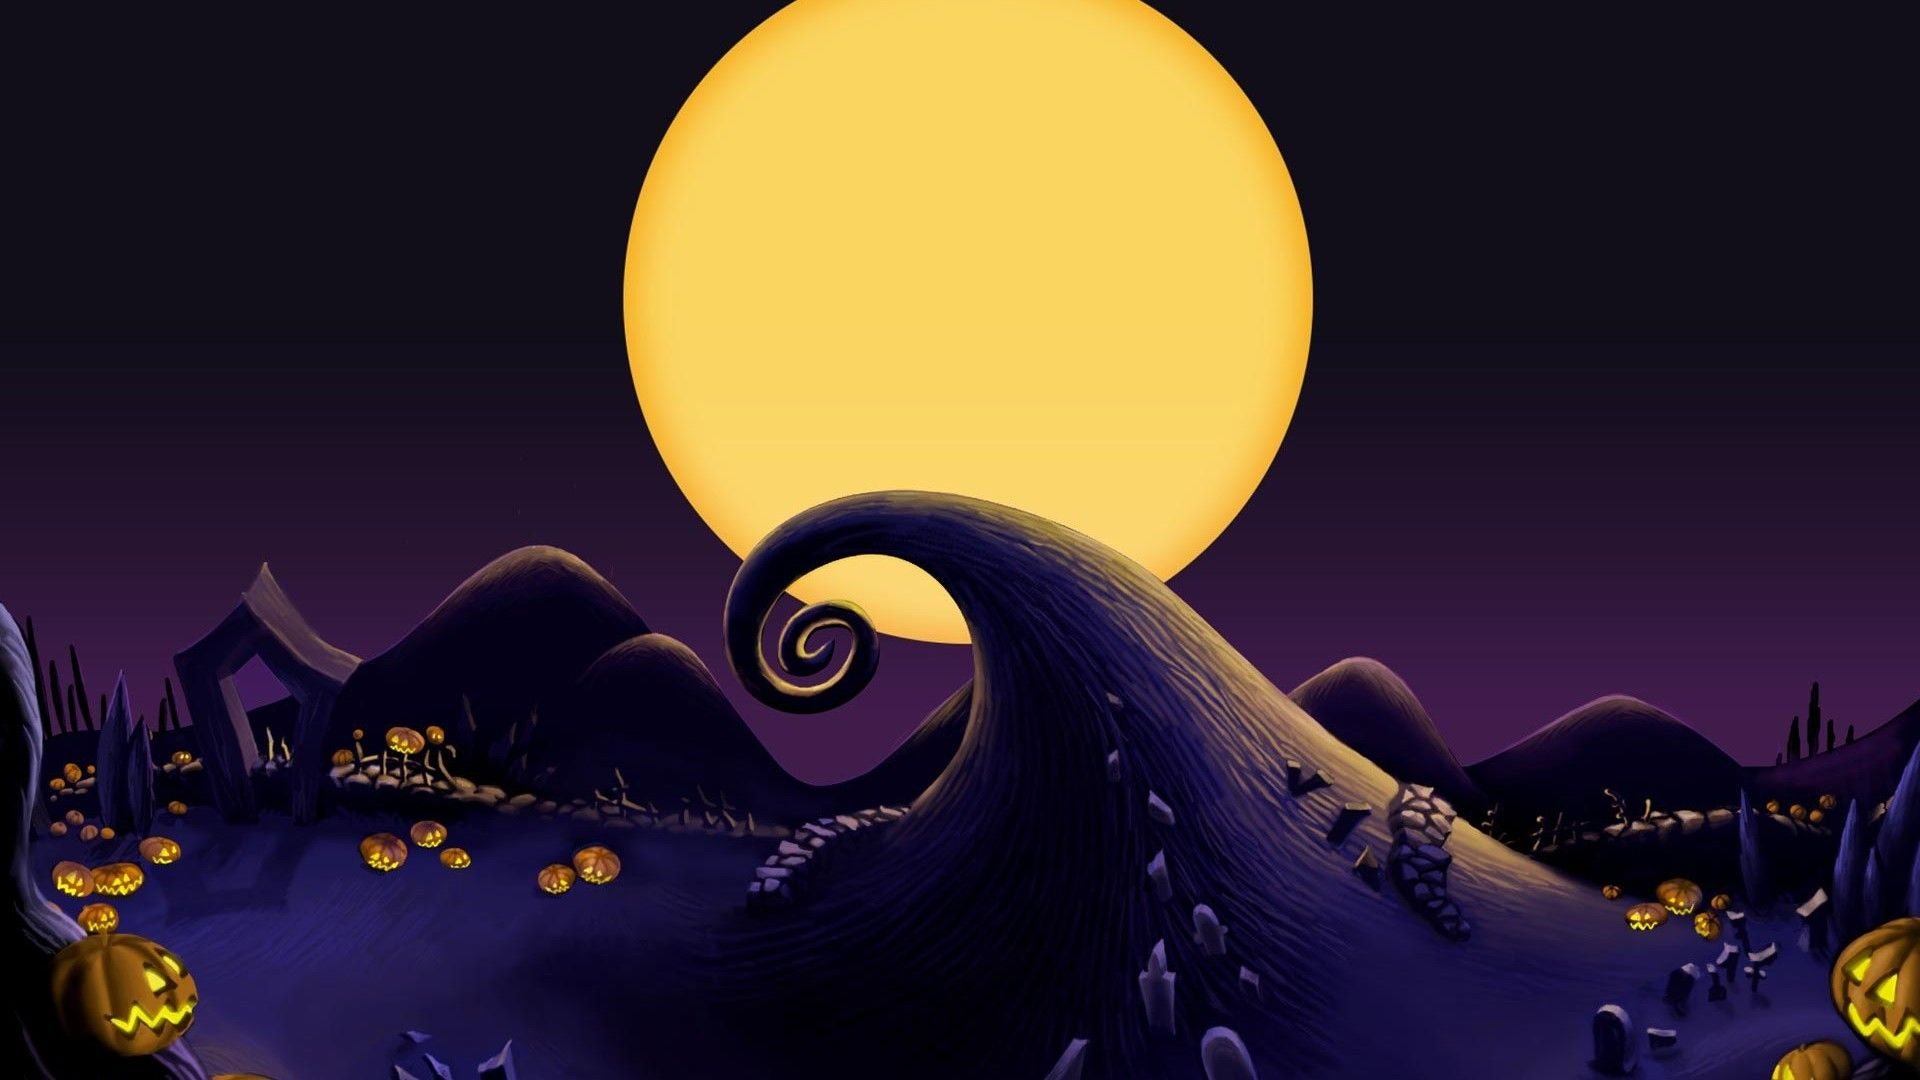 The Nightmare Before Christmas Wallpapers 32 Images